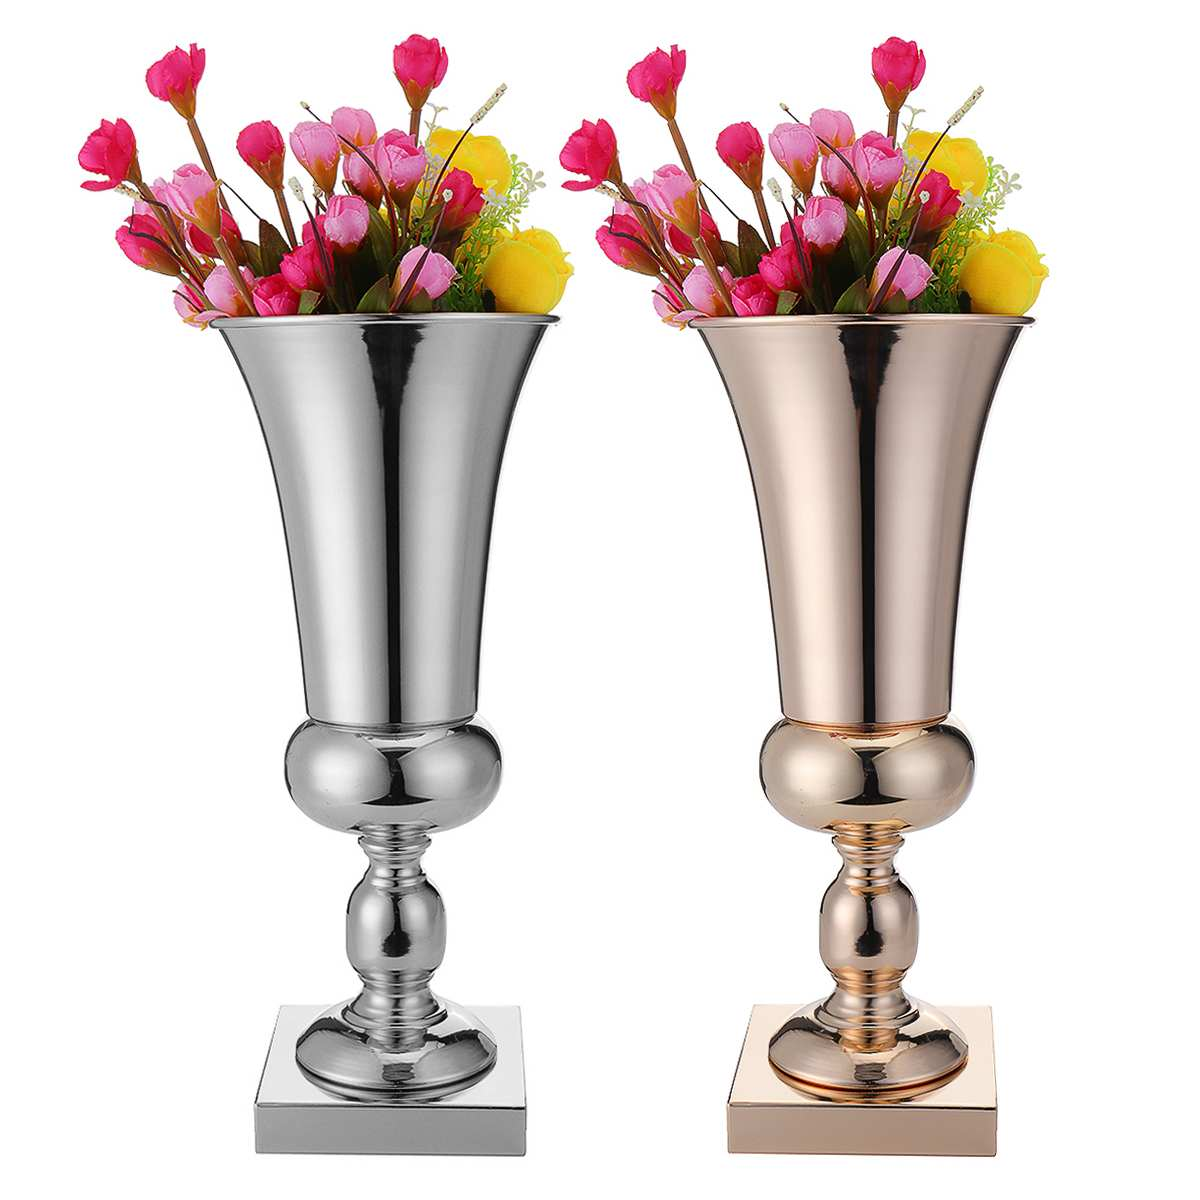 43cm Luxury Silver Gold Flower Vase Iron Metal Wedding Home Table Centrepiece Decor Dining Living Room Ornaments Accessories